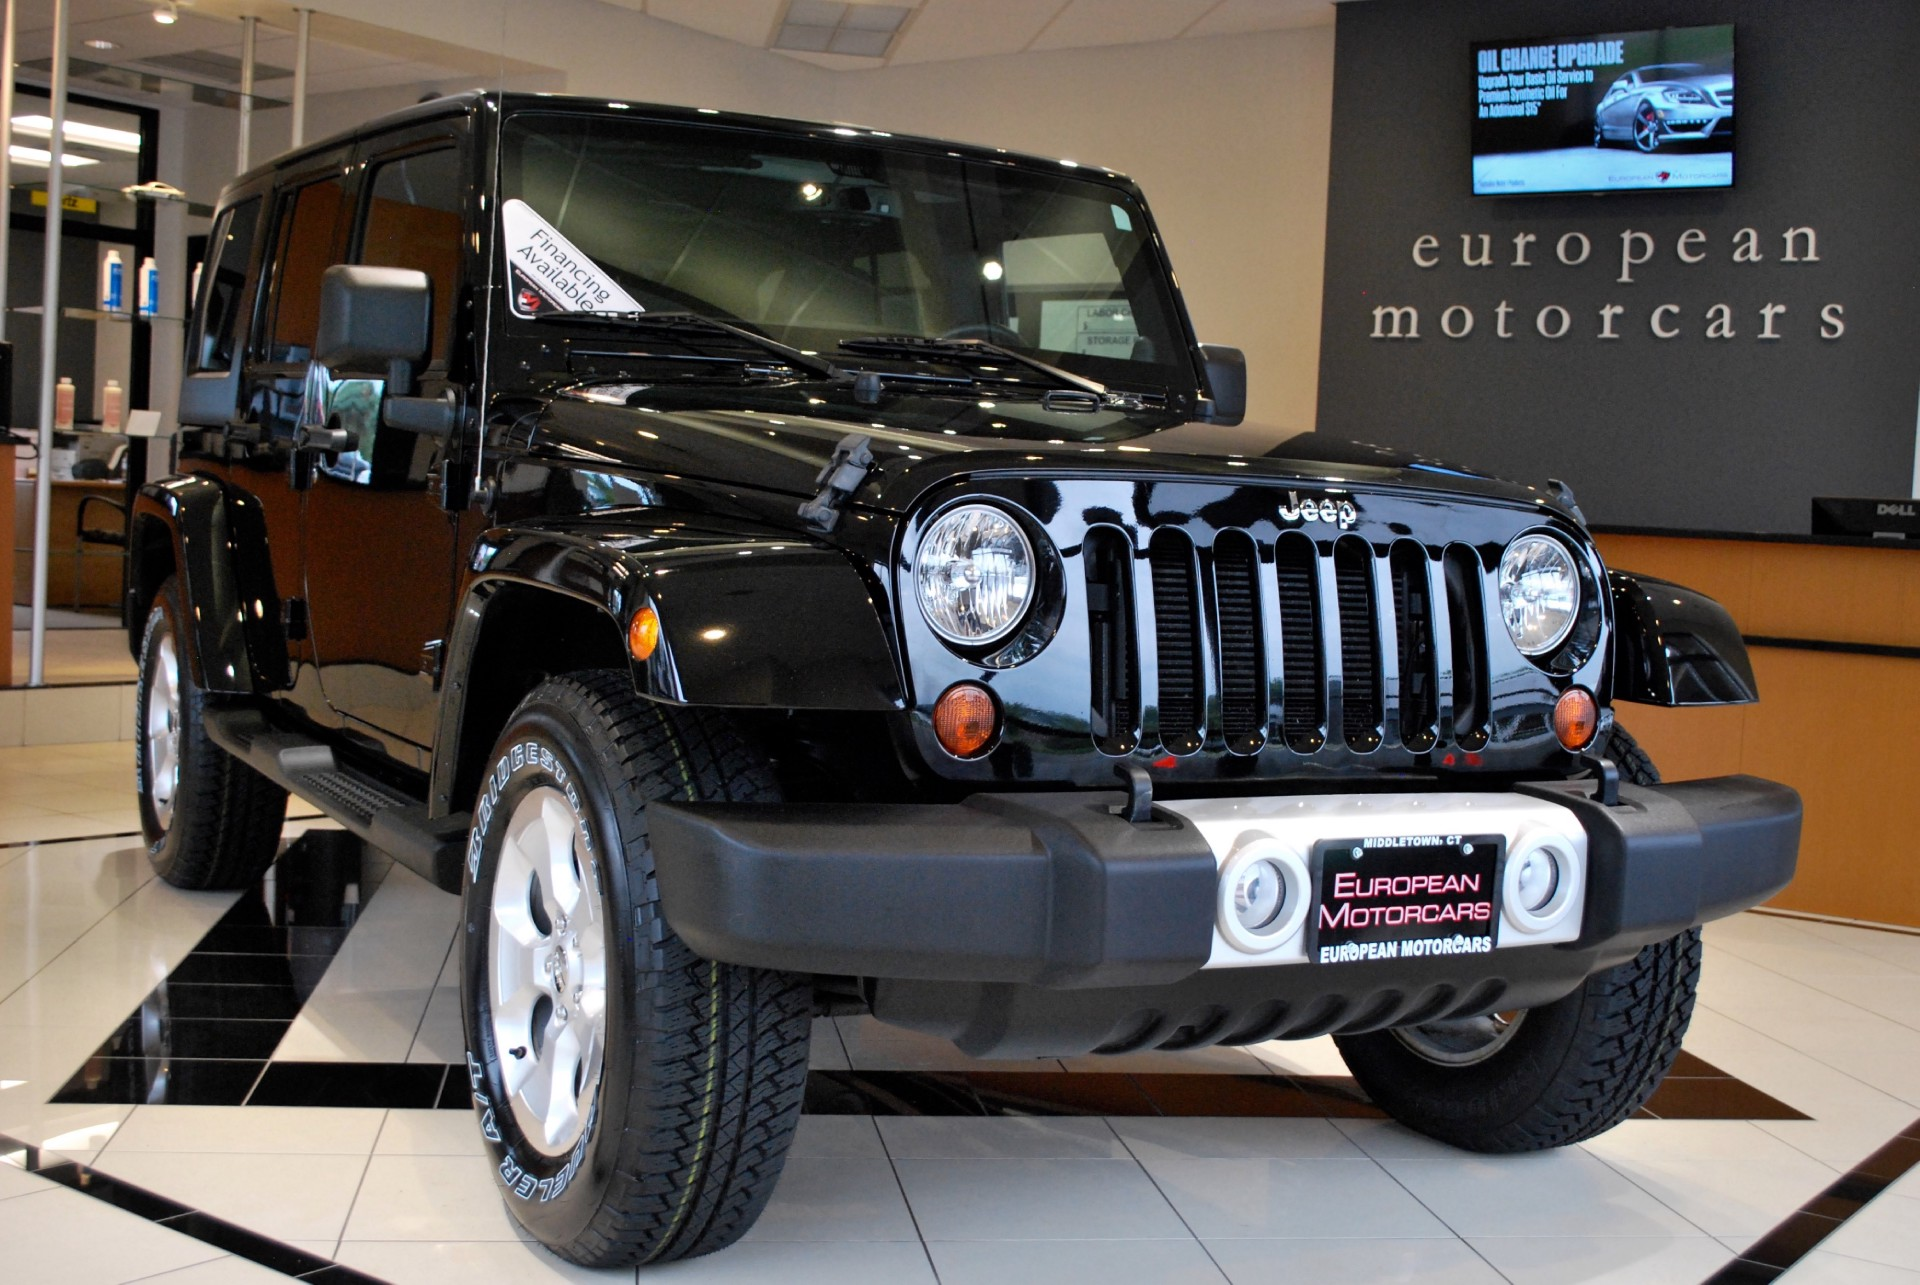 2013 jeep wrangler unlimited sahara for sale near middletown ct ct jeep dealer stock 504214. Black Bedroom Furniture Sets. Home Design Ideas